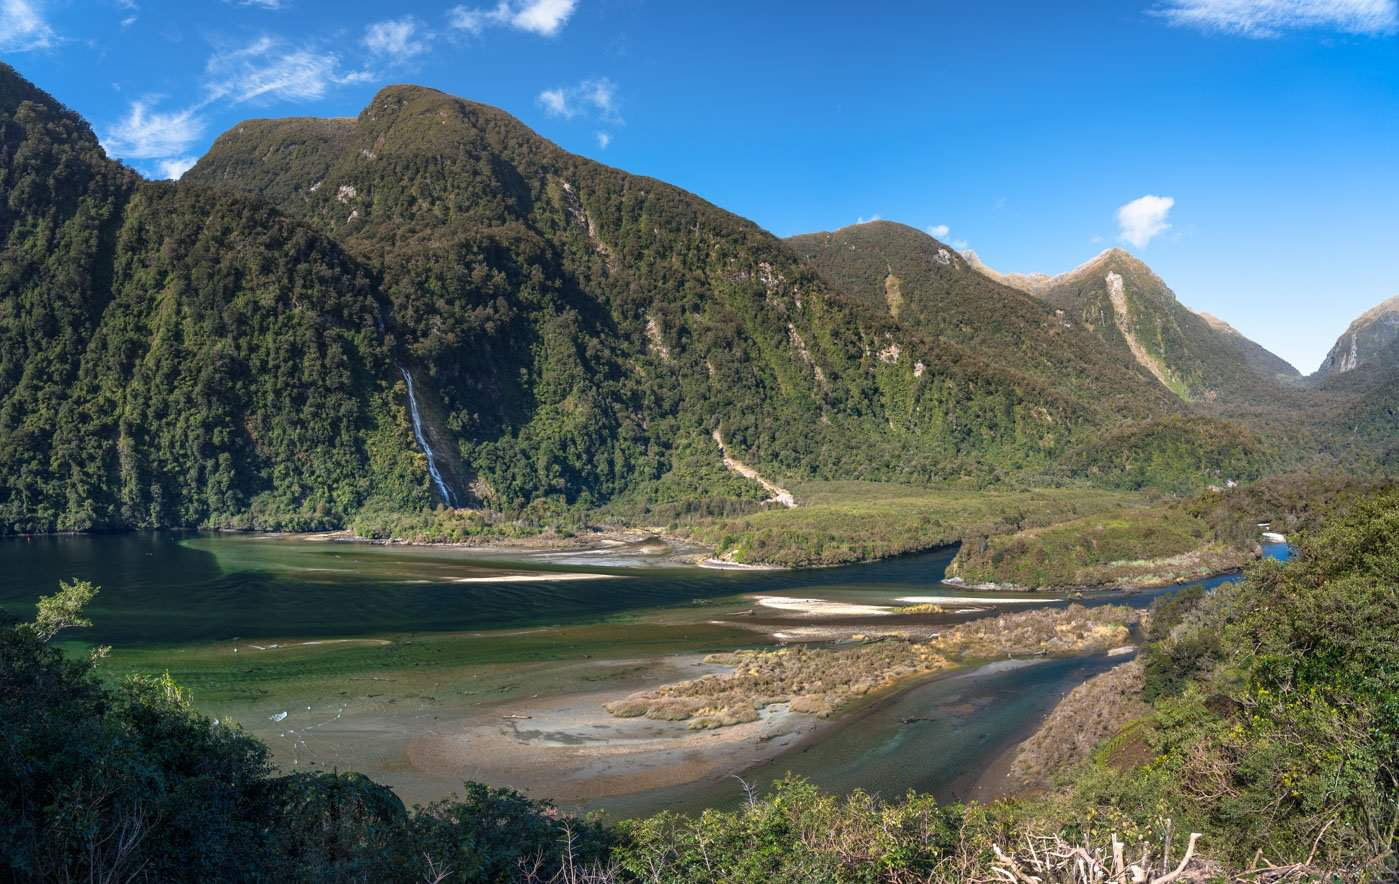 A braided river and waterfall, as seen on the way to our Doubtful Sounds cruise ship.